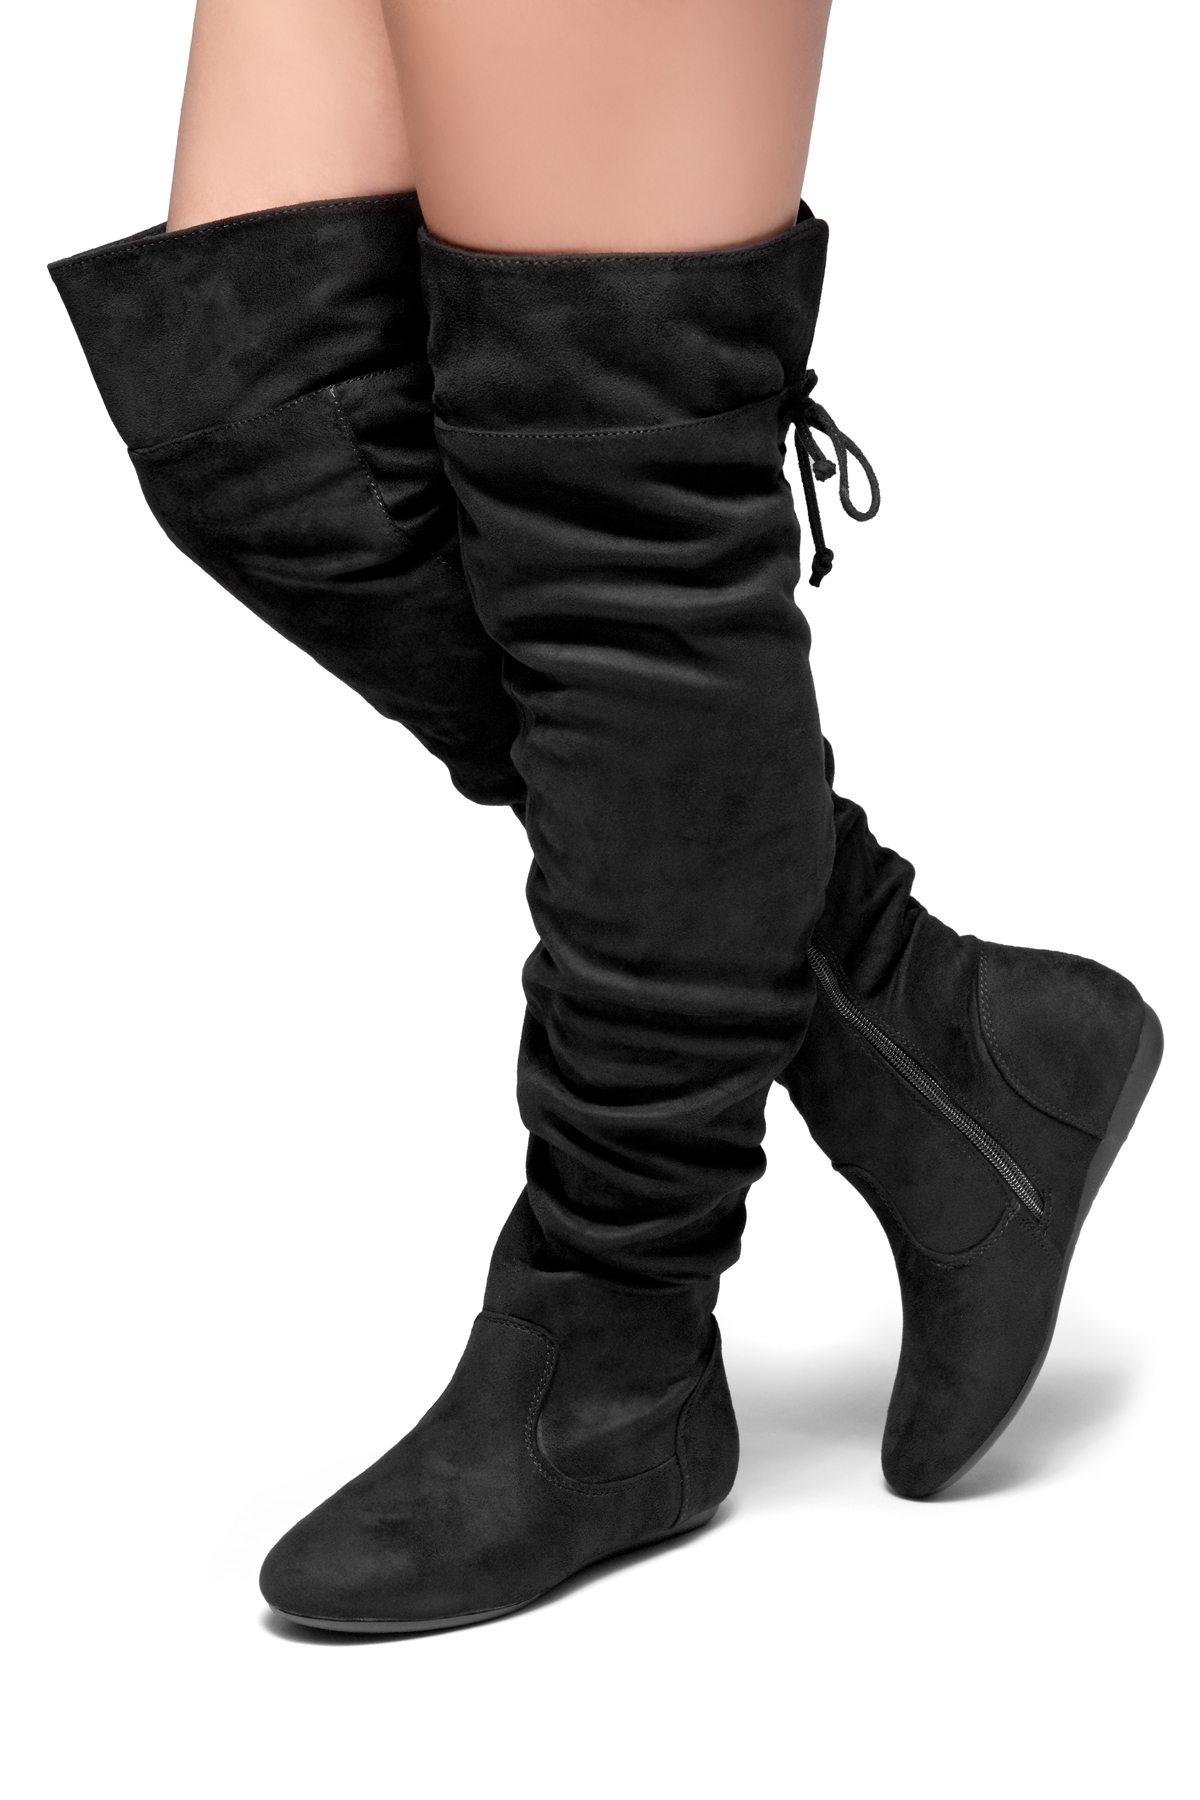 a32bf1709569 HerStyle Lauurren Faux Suede Thigh High Boots - black ...